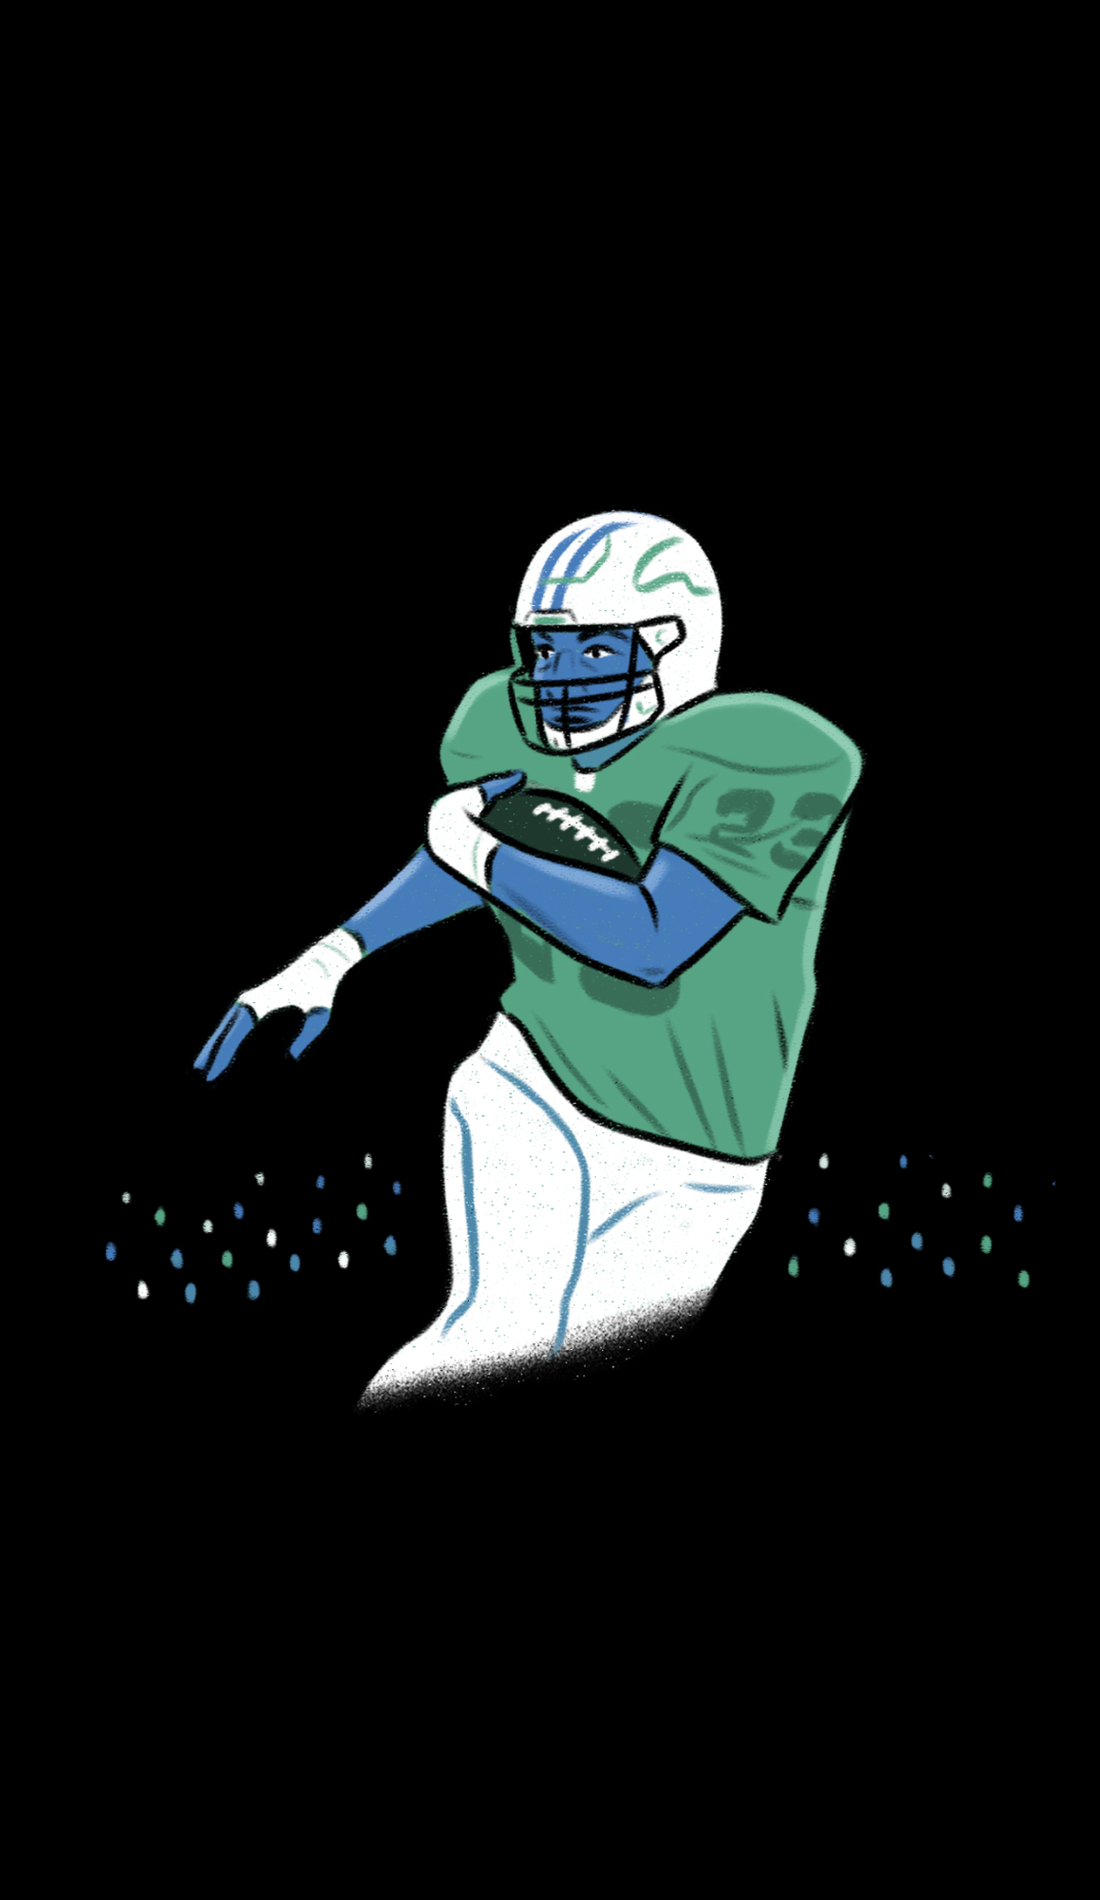 A Tarleton State Texans Football live event